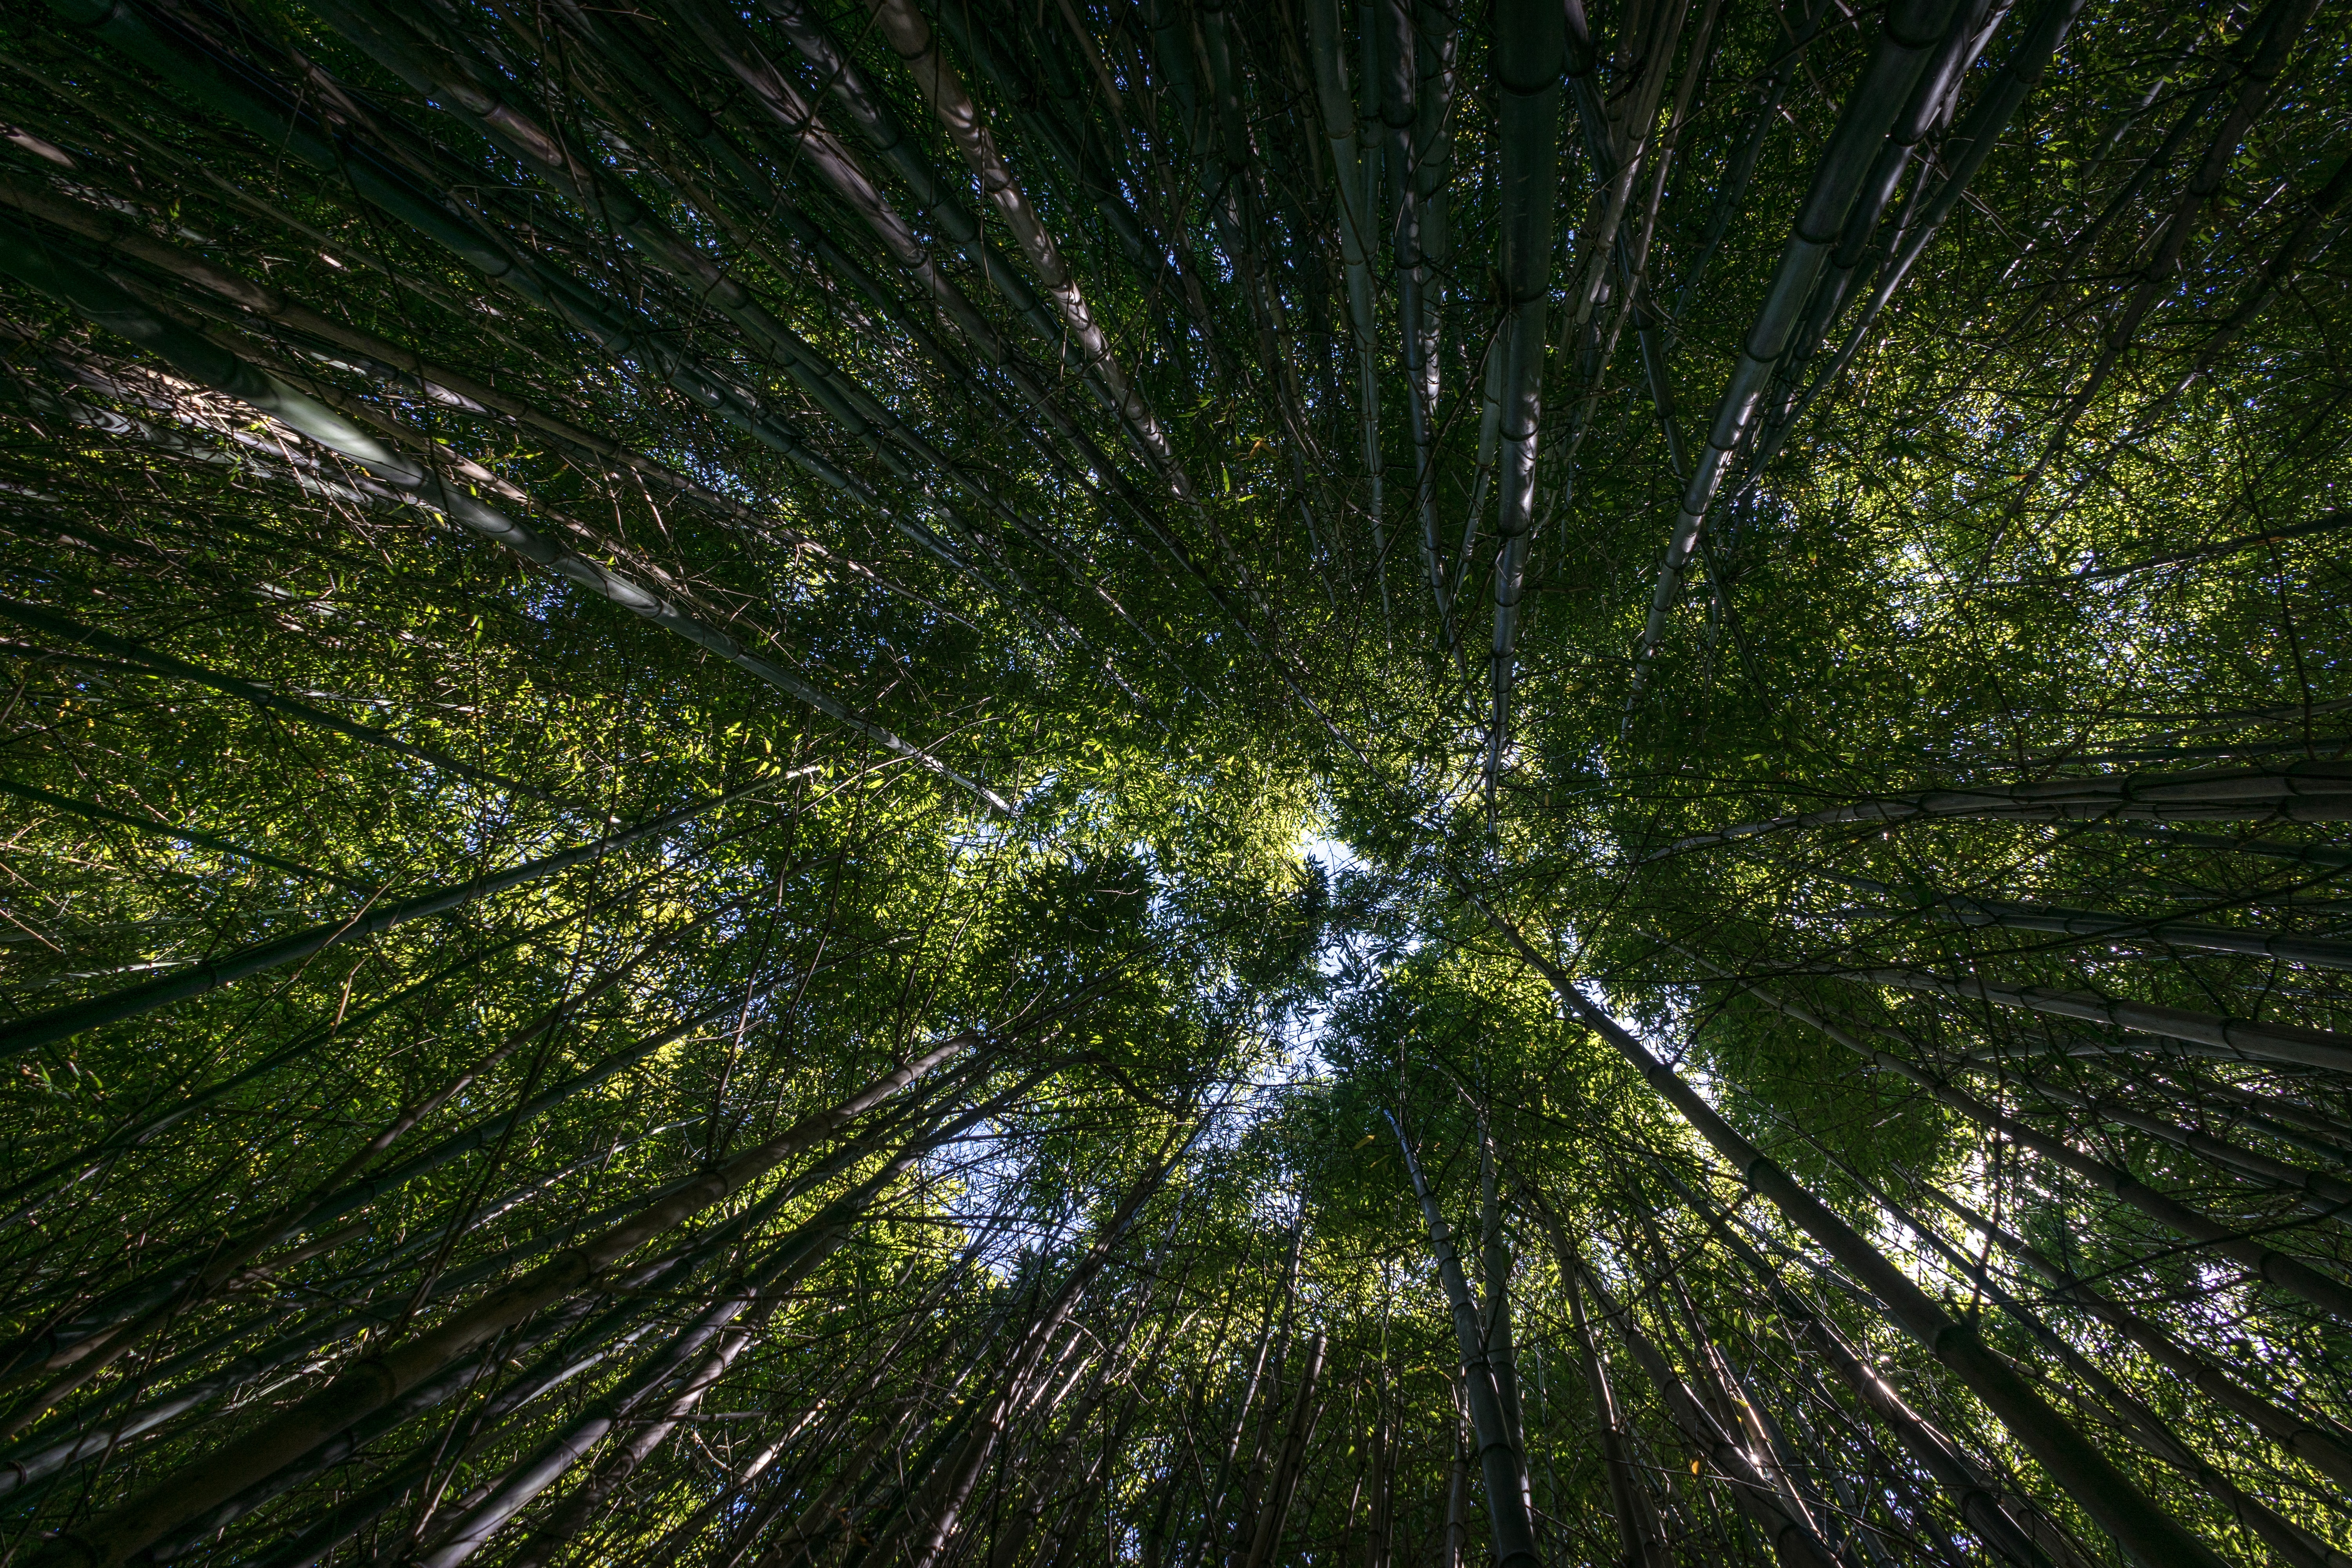 Looking up in the middle of a plush, green forest